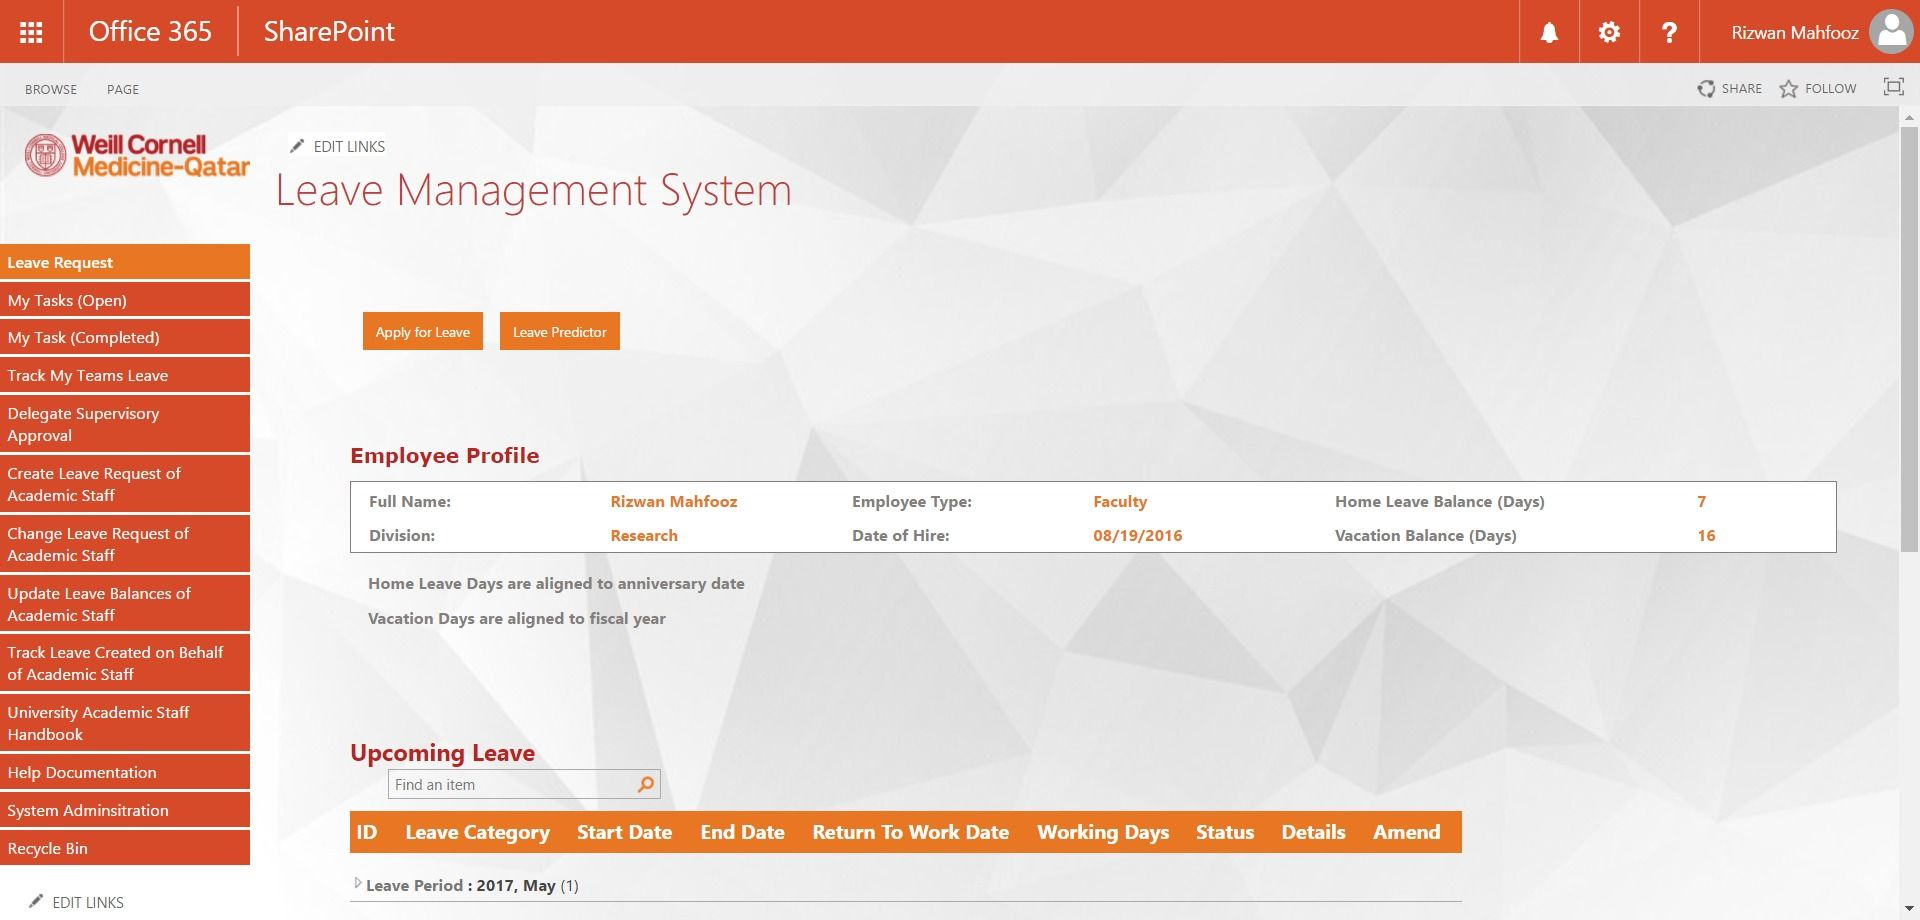 SharePoint based Leave Management System